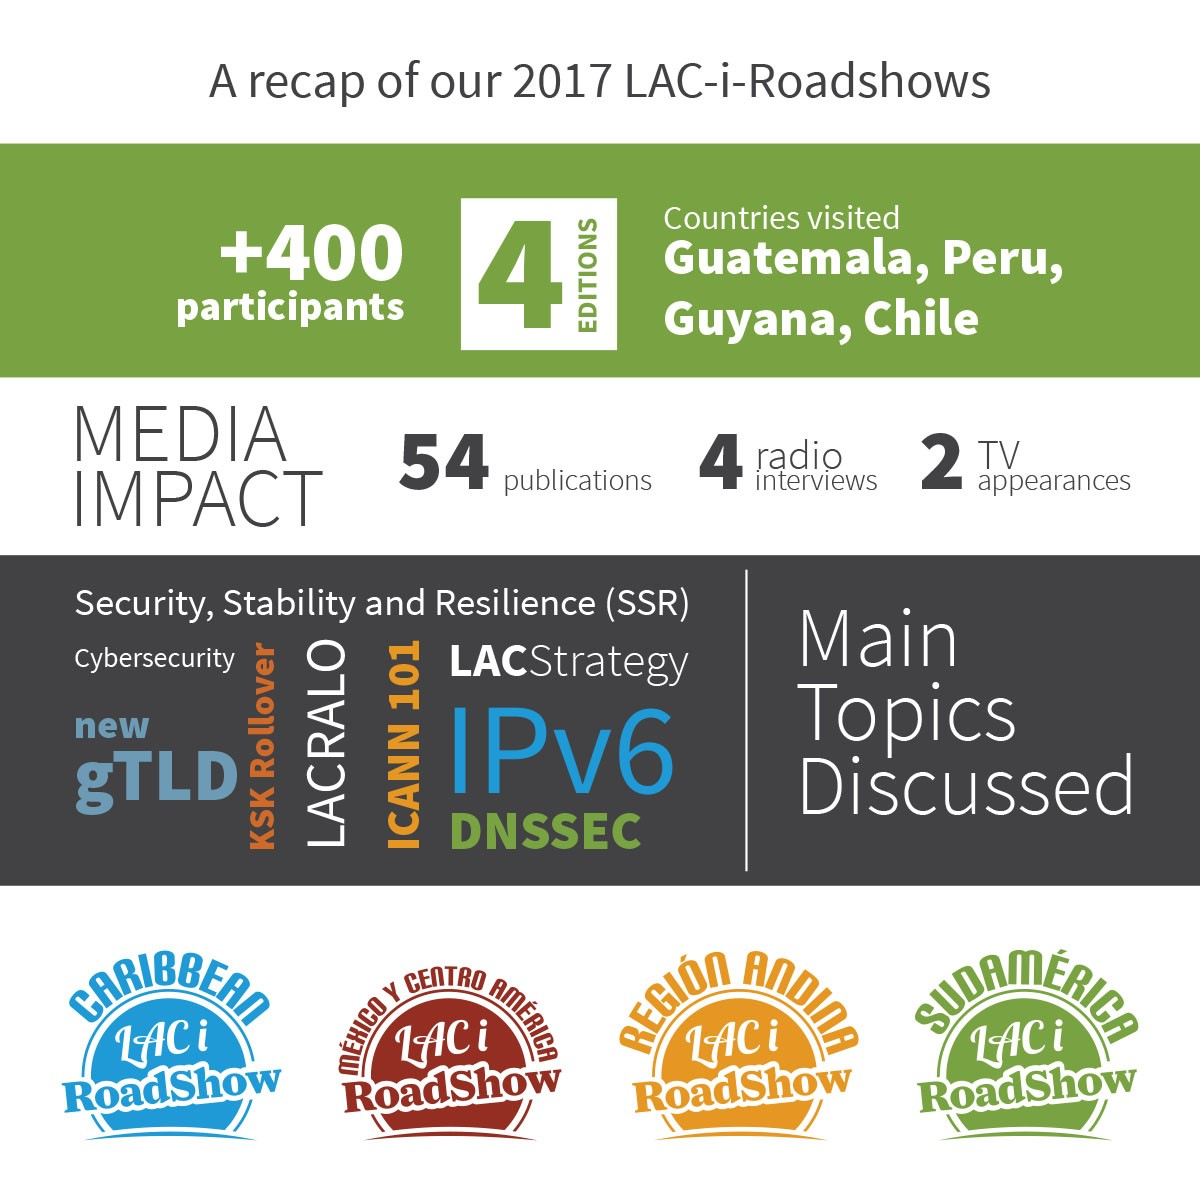 A recap of our 2017 LAC-i-Roadshows